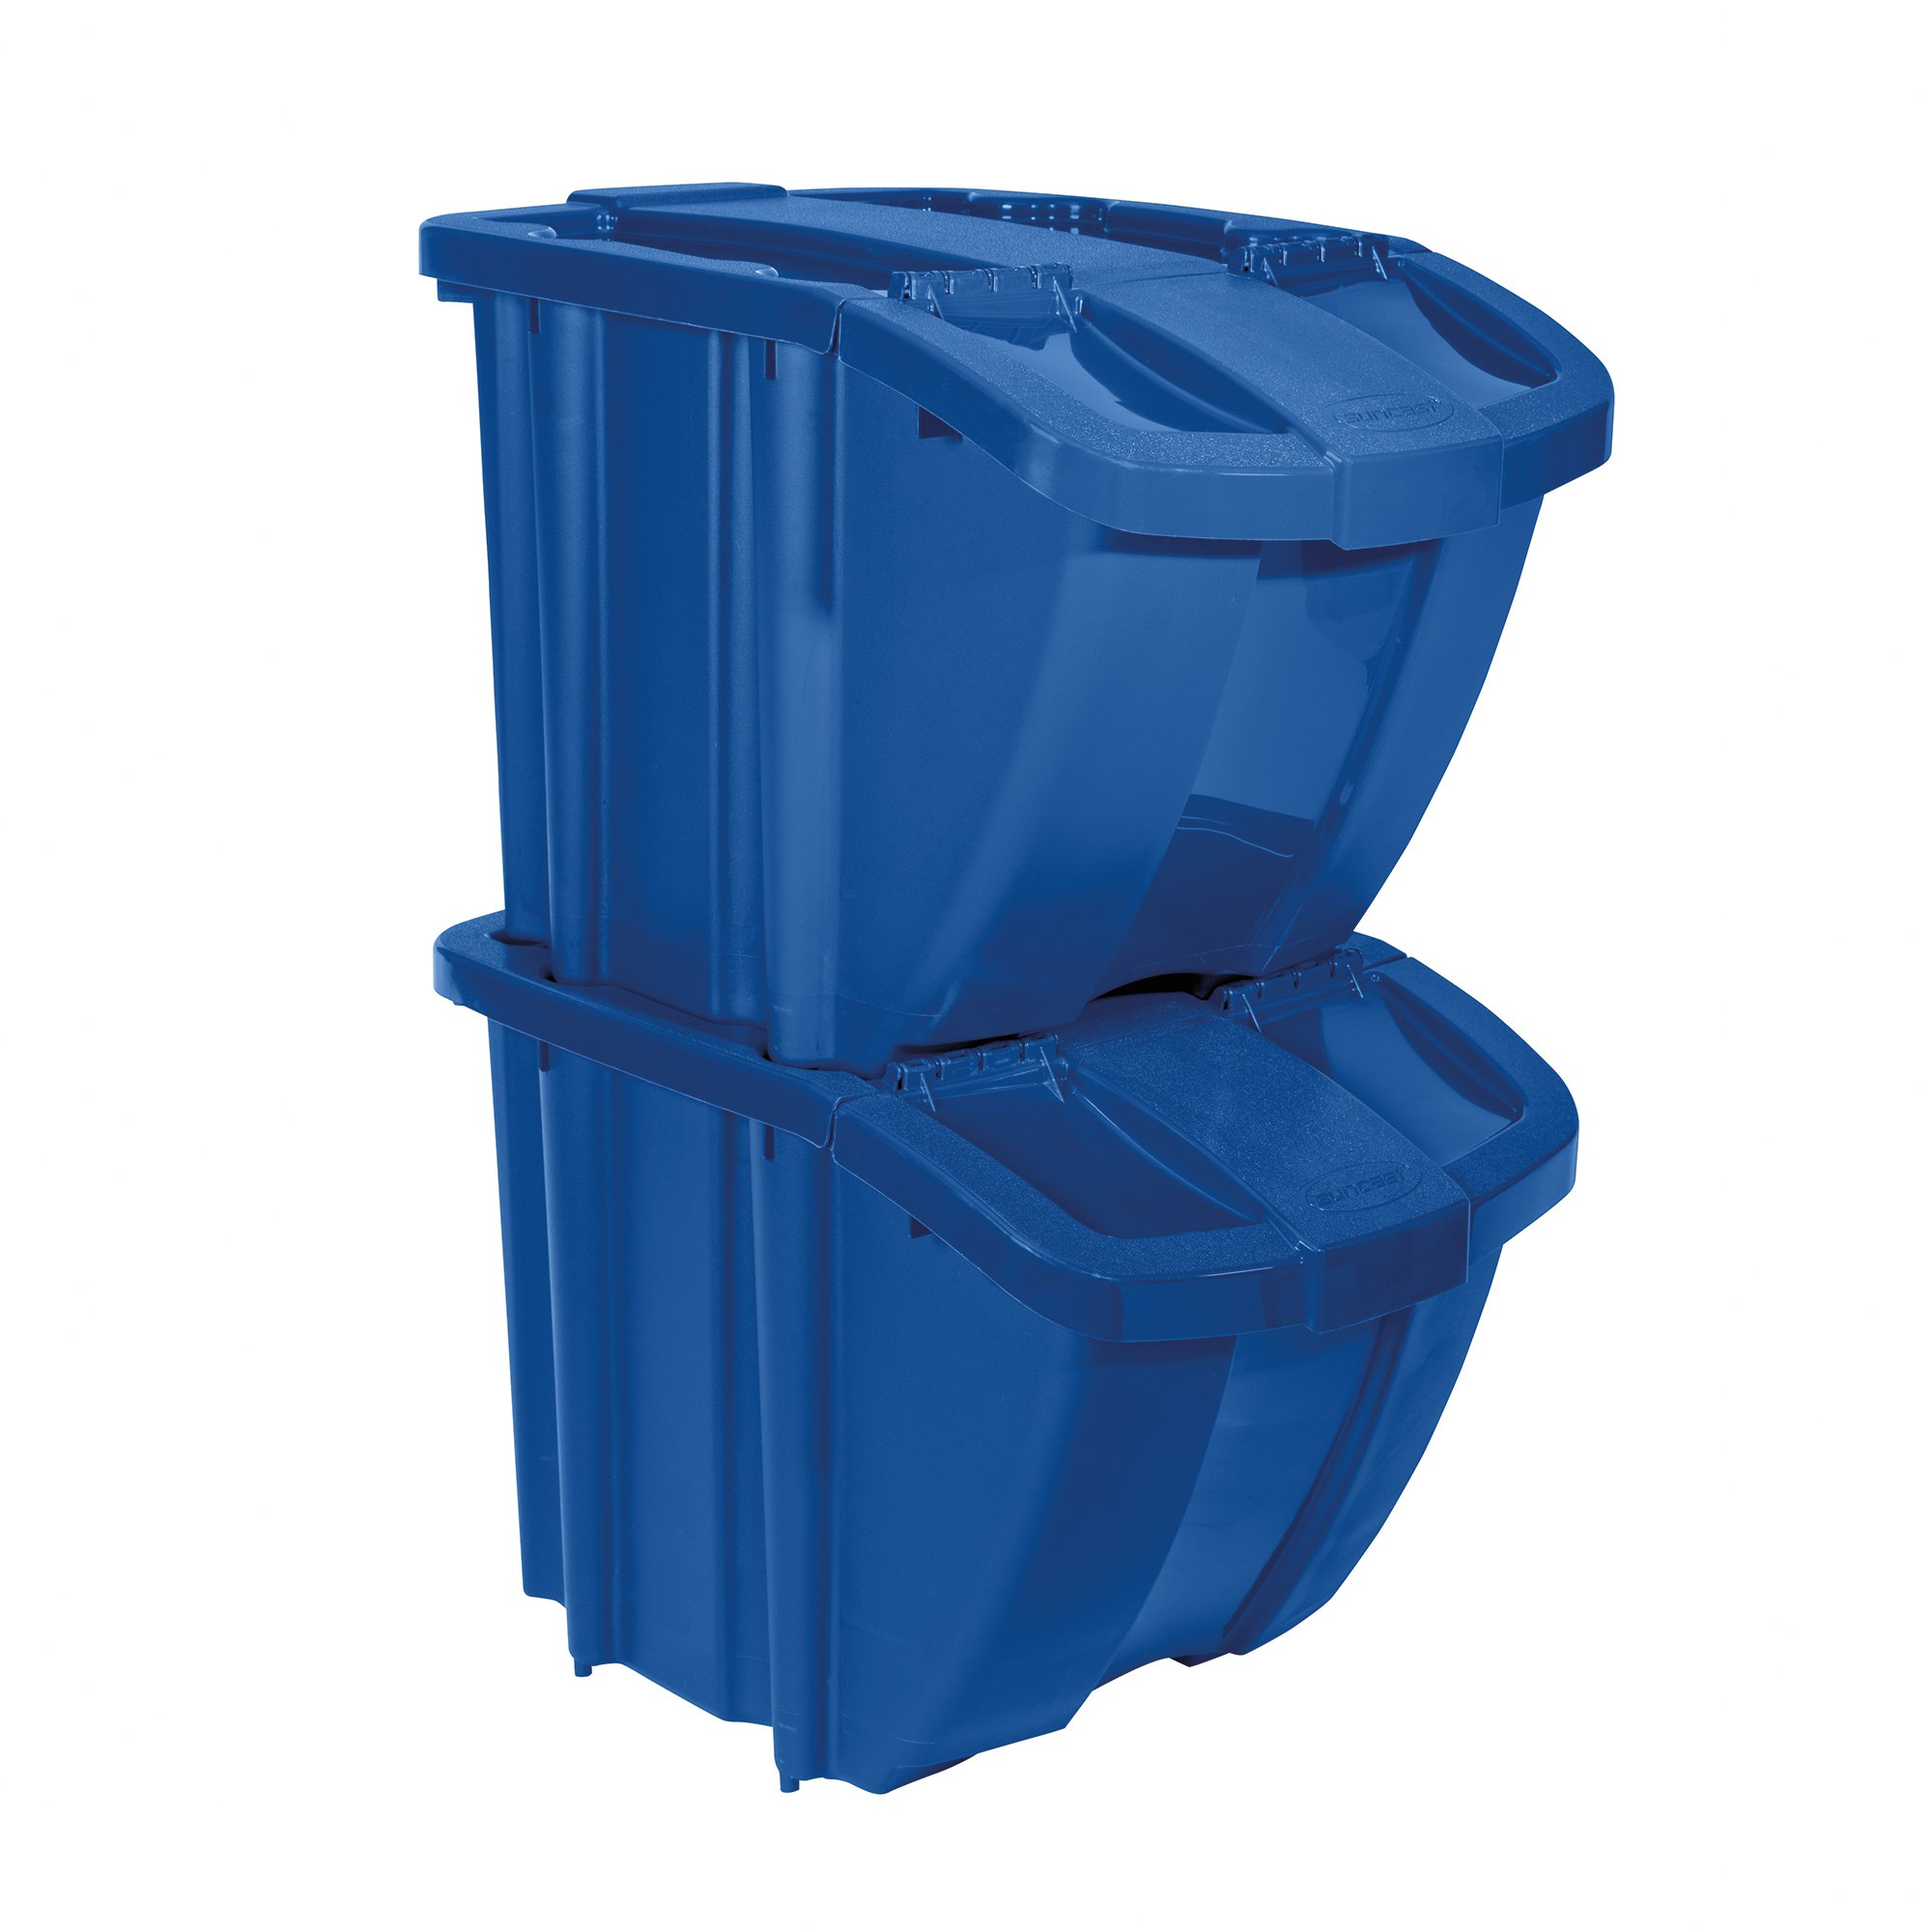 Suncast Recycle Bin Kit